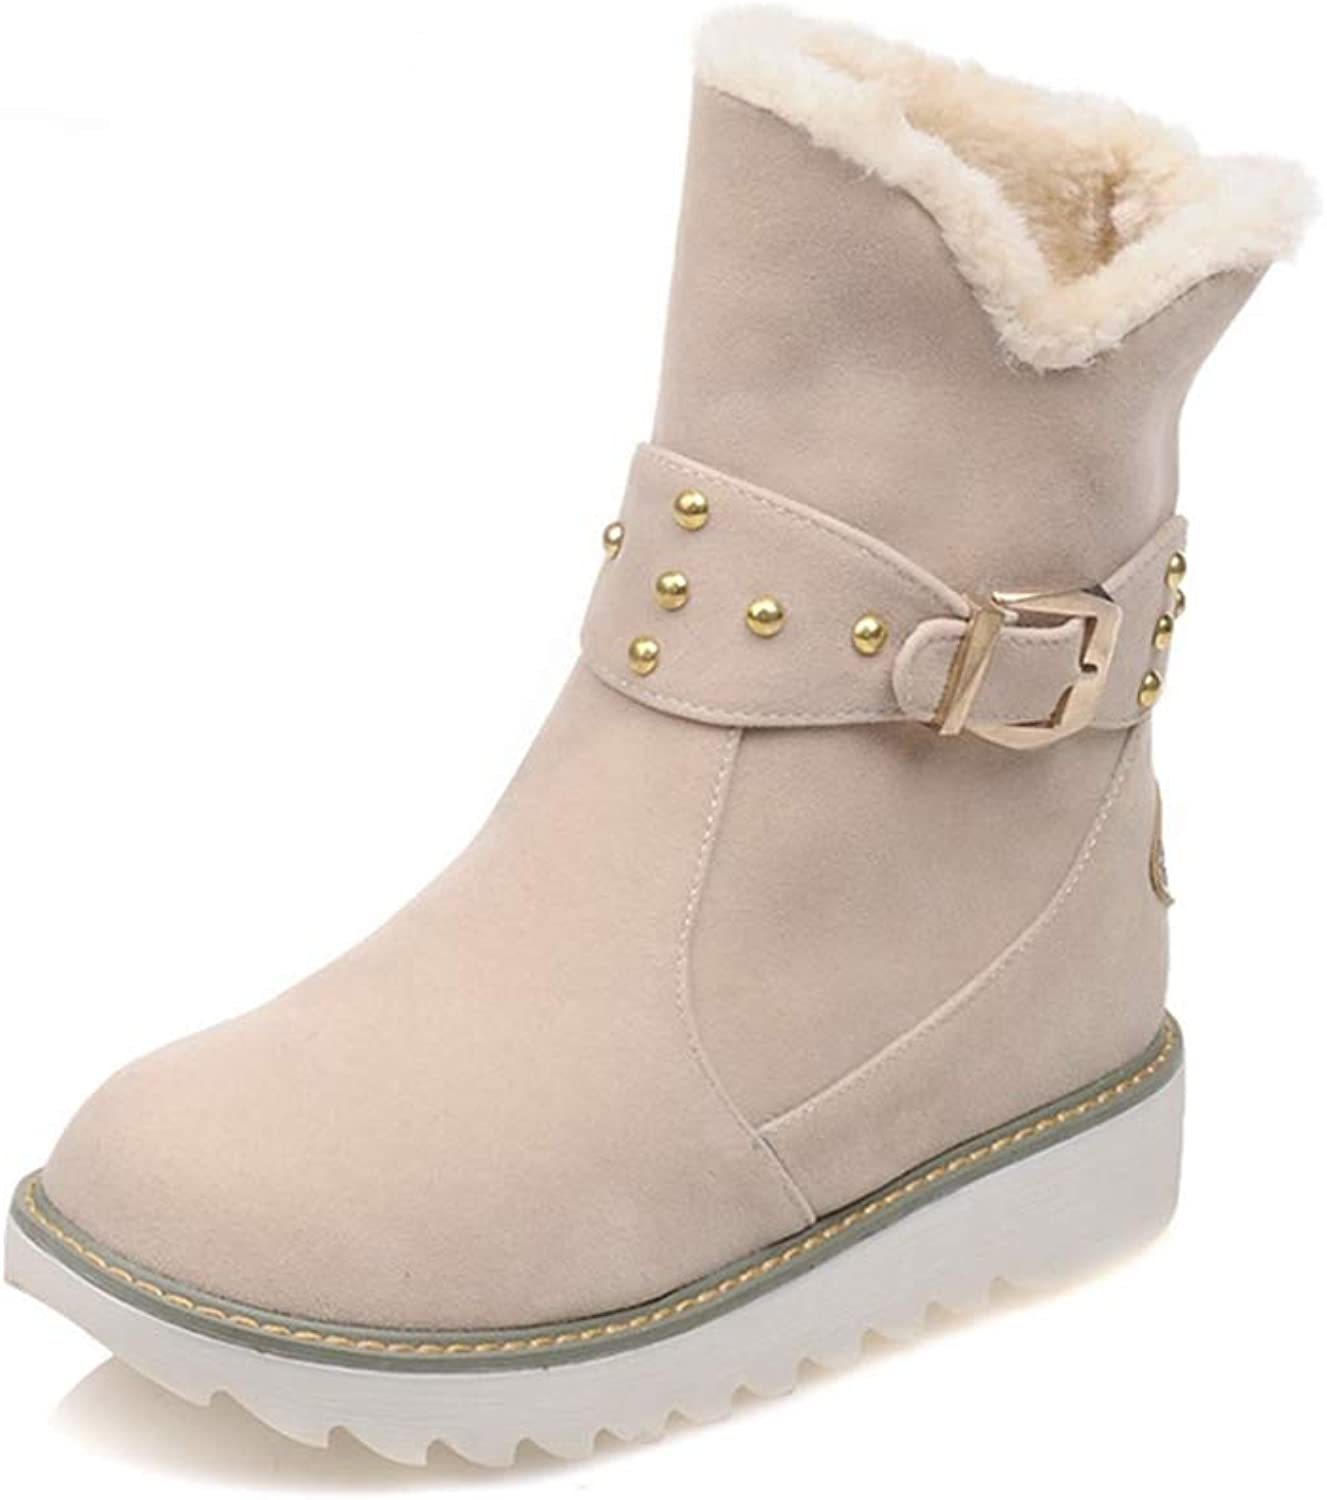 Hoxekle Woman Snow Boots Buckle Rivet Platform Slip On Plush Casual Winter Anti-Slip Round Toe Female Warm Ankle Boots